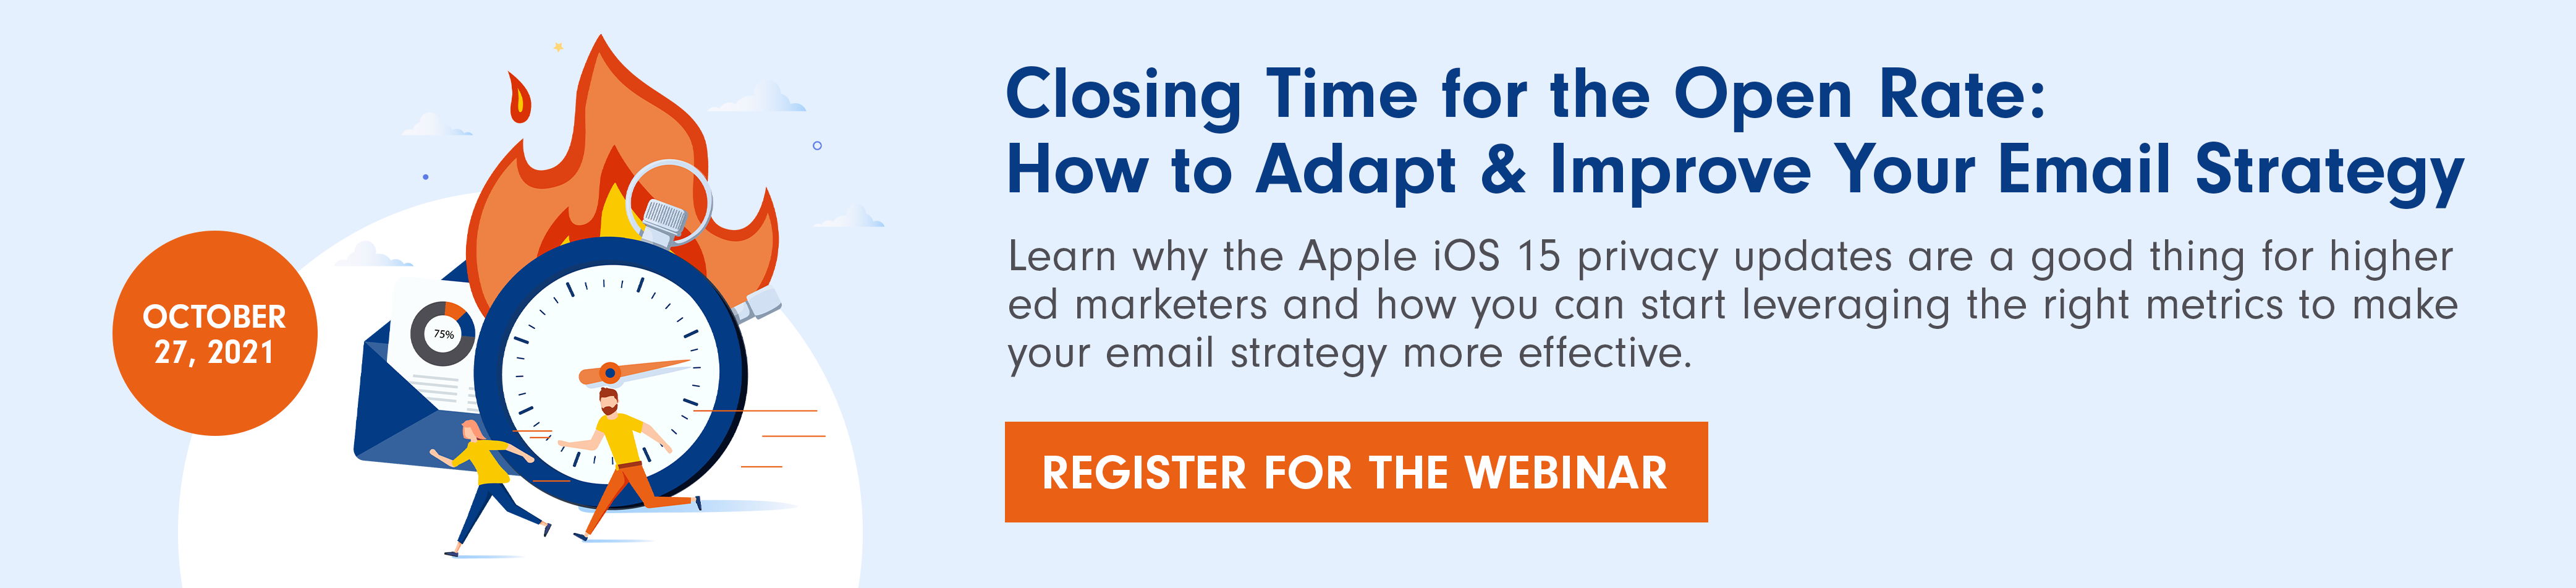 Closing Time for the Open Rate: Register for the Webinar